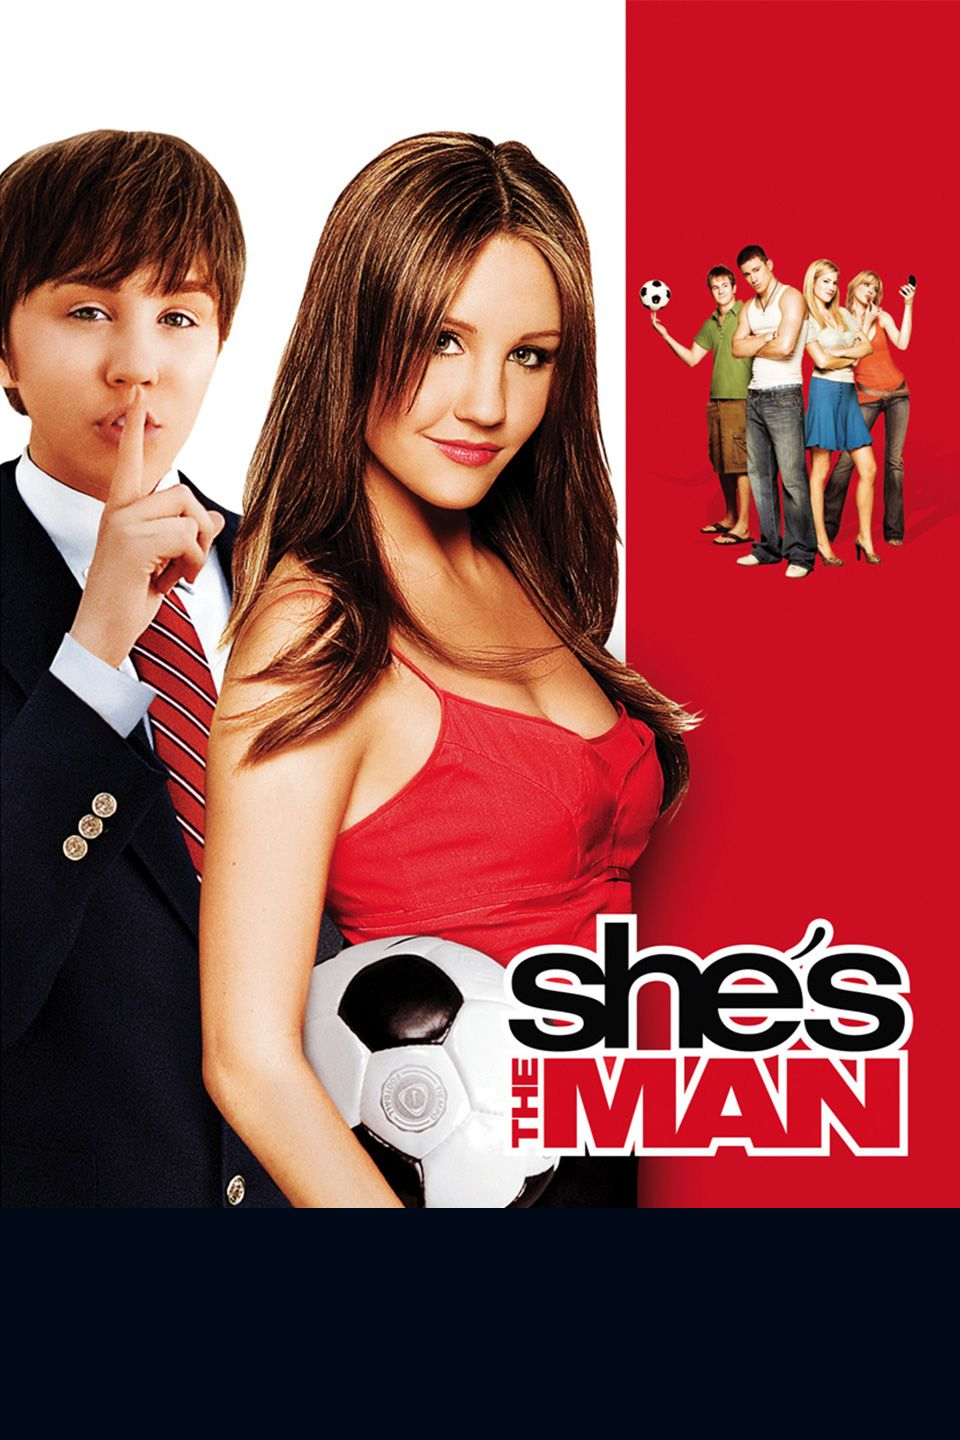 She's The Man (movie). Based from Shakespeare Twelfth